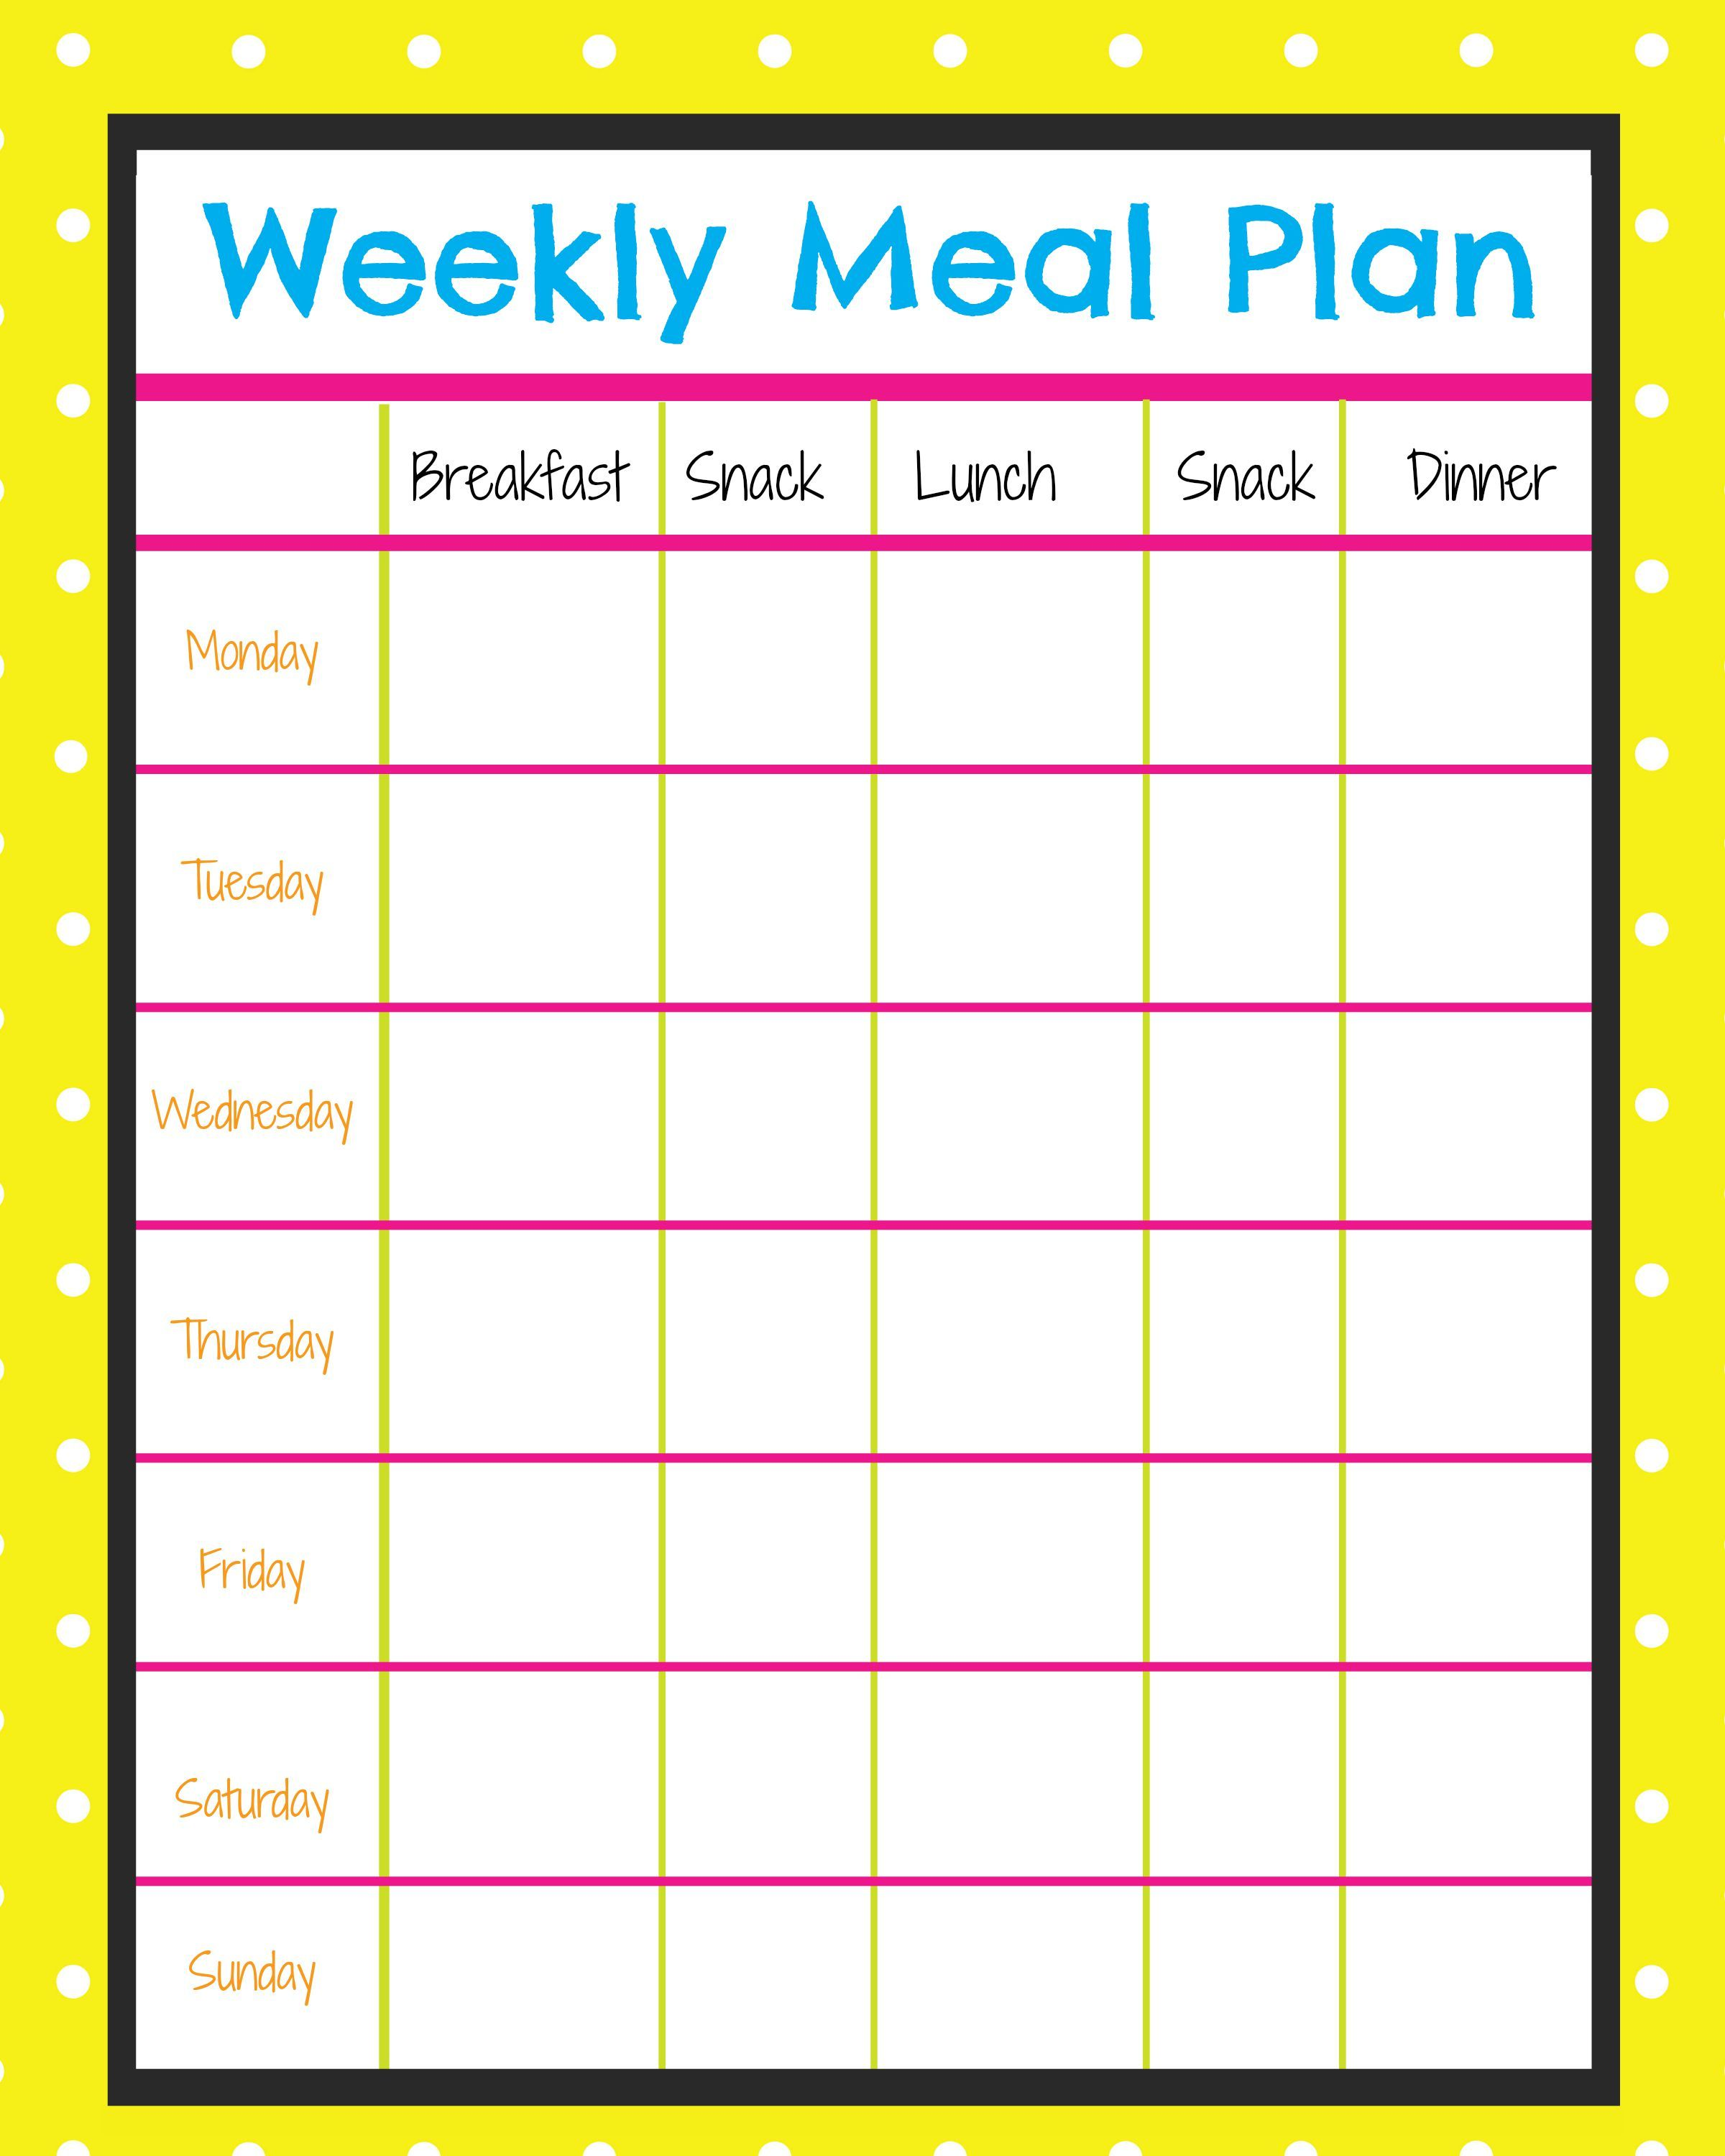 Free Menu Planner To Plan Out Healthy Snacks And Meals Through Out The Week This Has Helped Cut